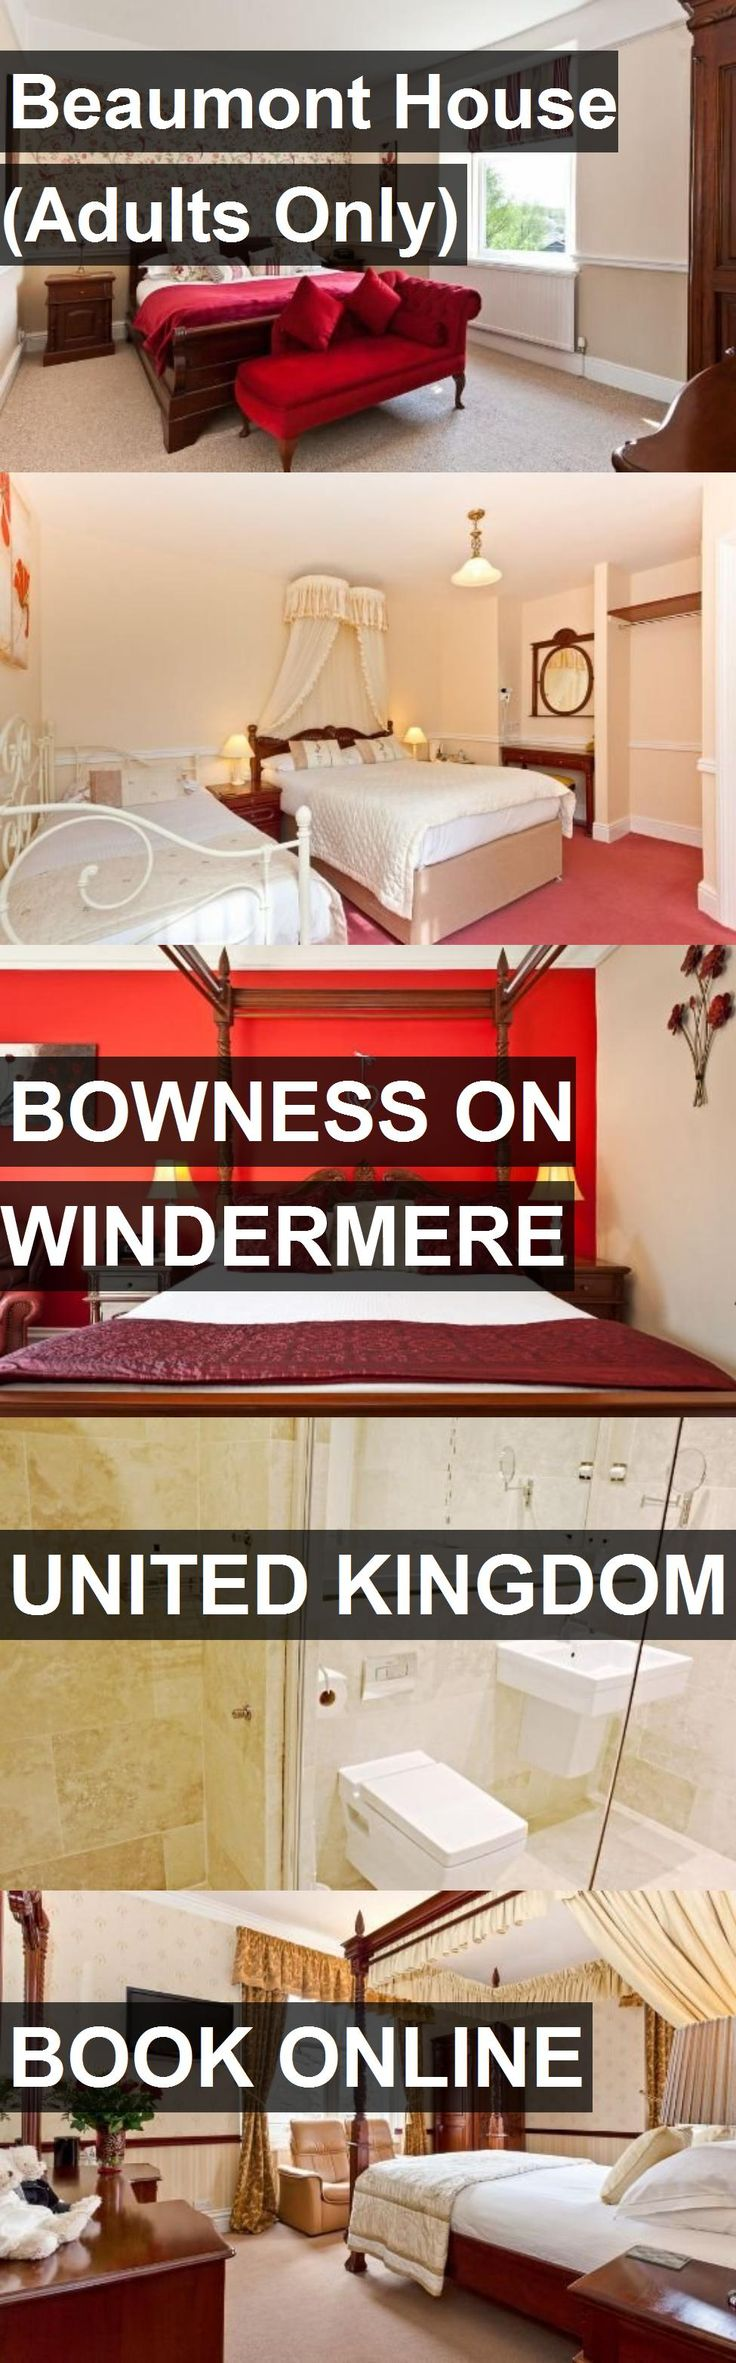 Hotel Beaumont House (Adults Only) in Bowness On Windermere, United Kingdom. For more information, photos, reviews and best prices please follow the link. #UnitedKingdom #BownessOnWindermere #travel #vacation #hotel